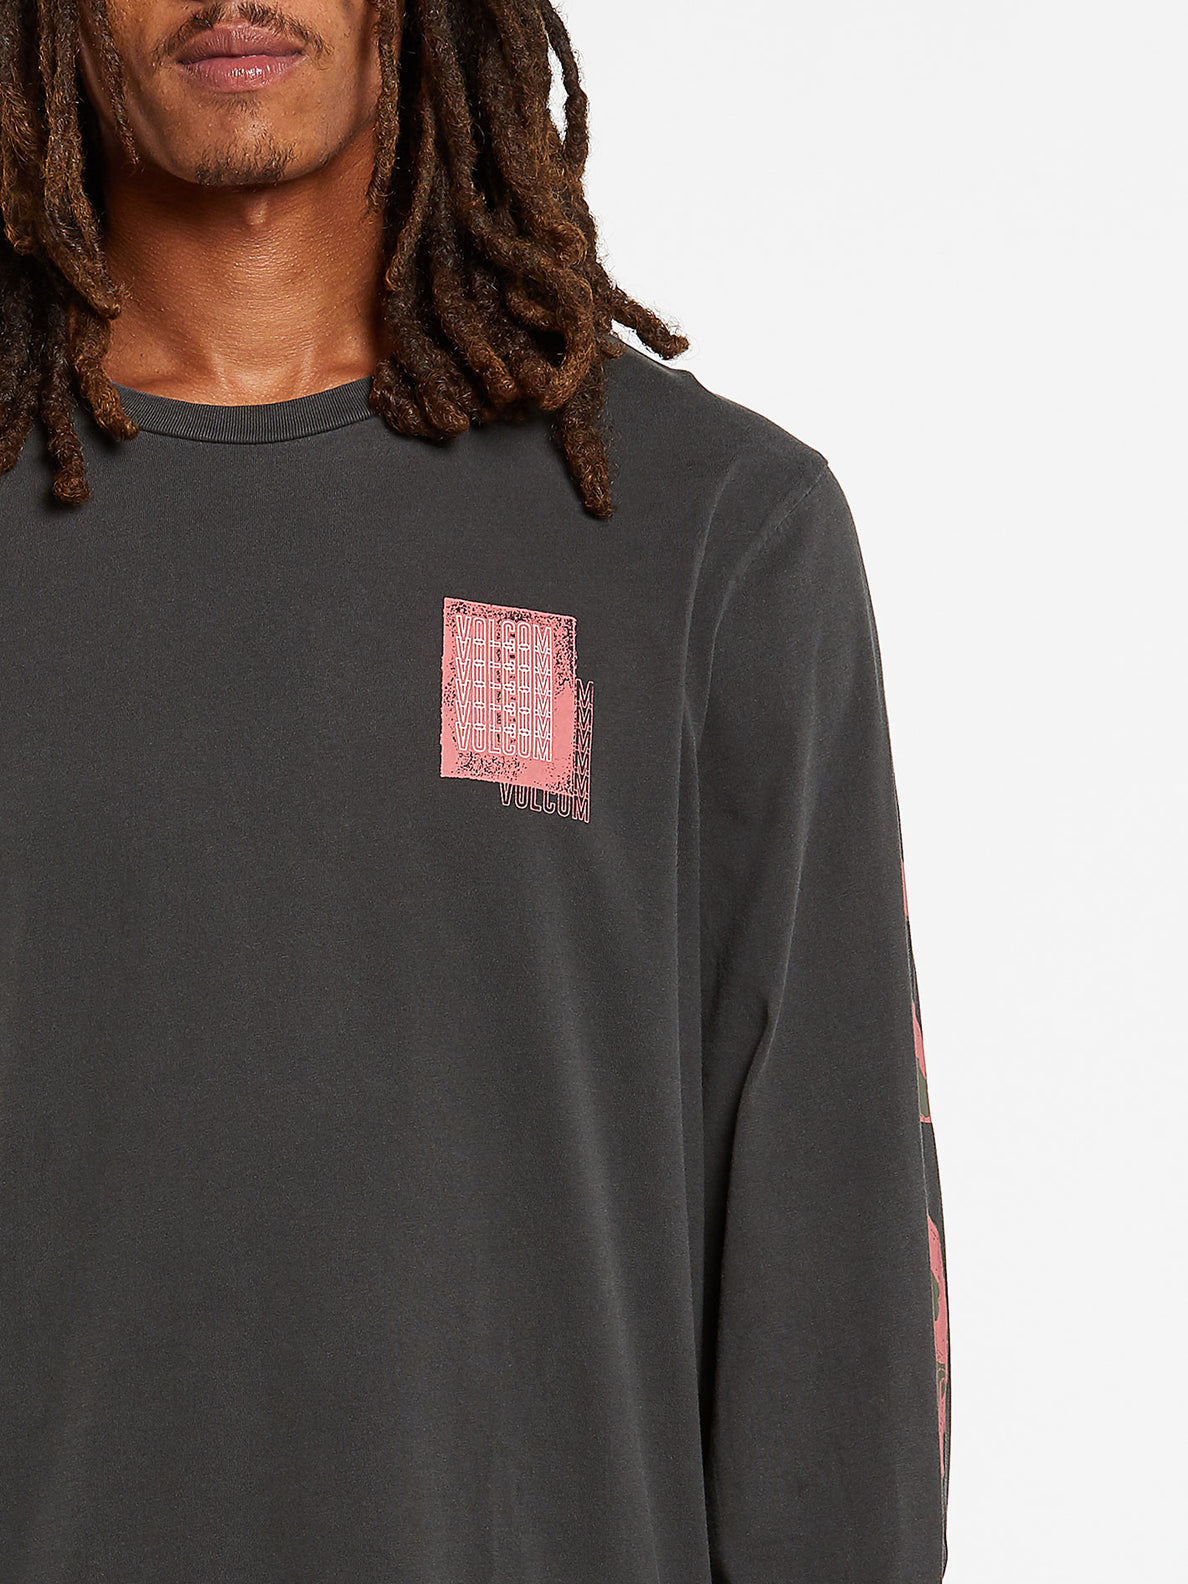 Concussion Long Sleeve Tee - Black (A3632001_BLK) [2]